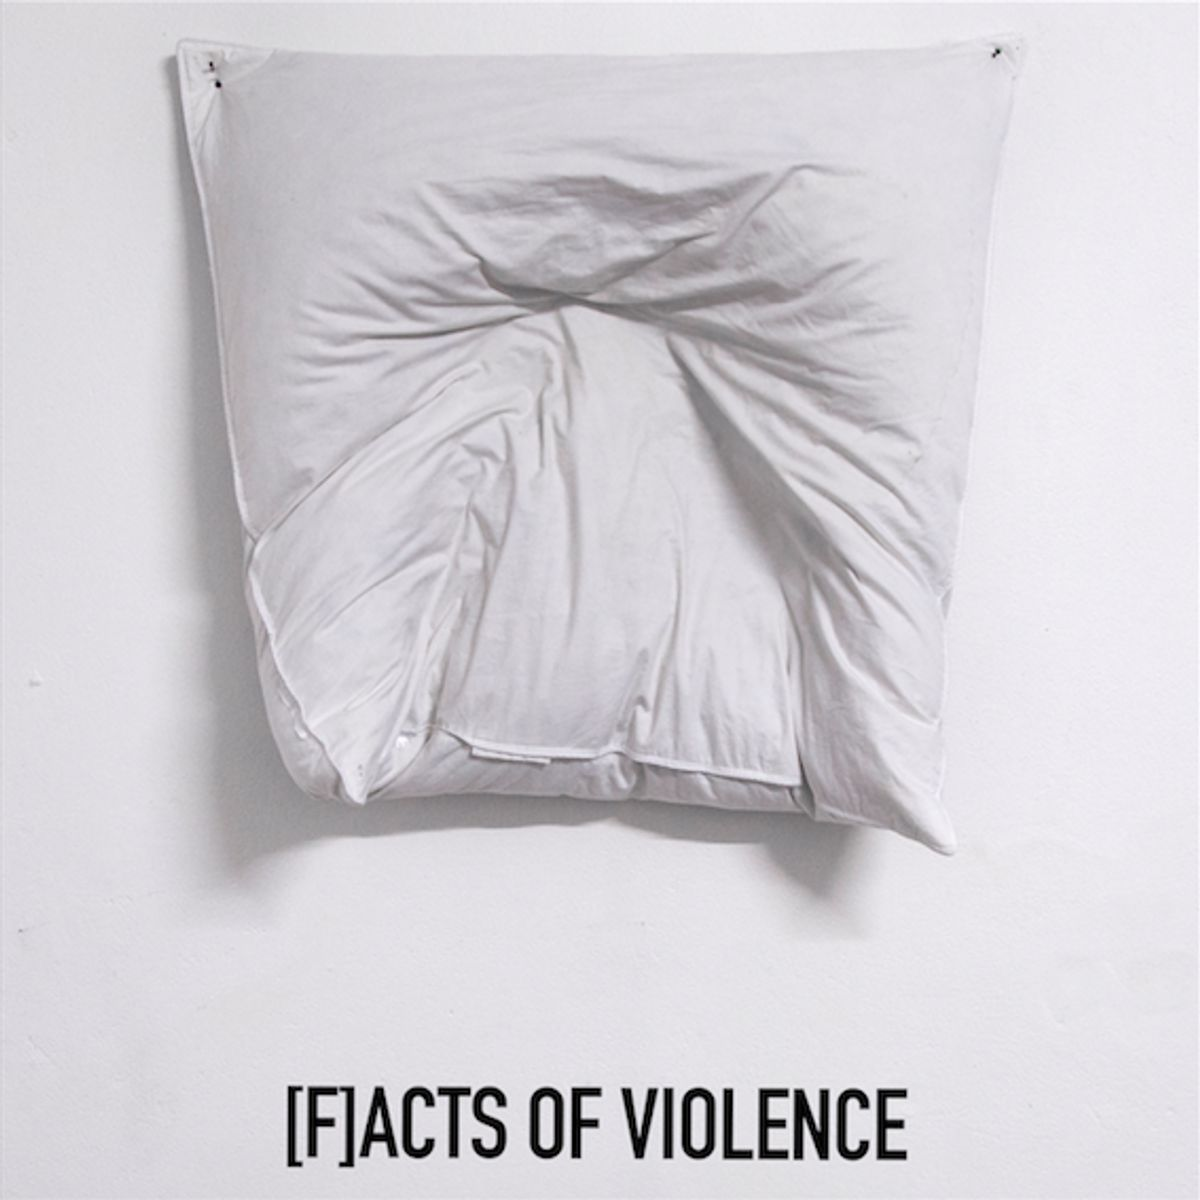 [F]acts of violence